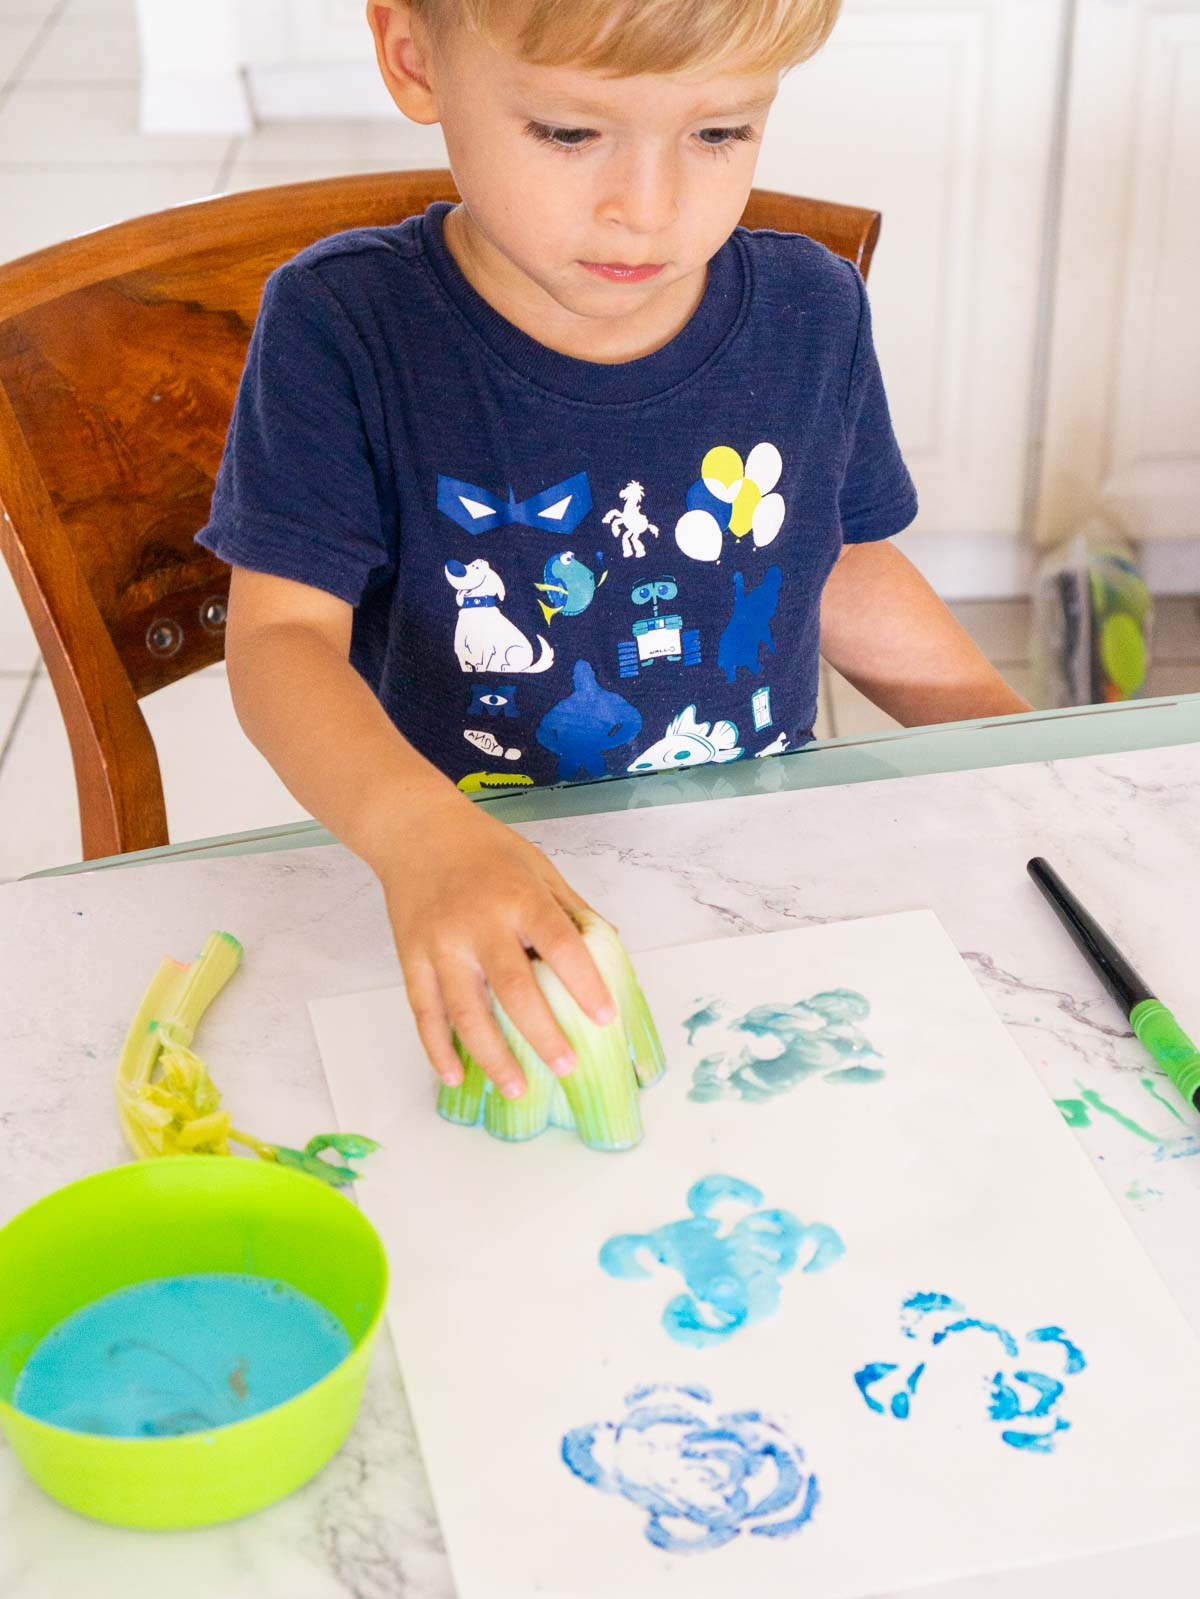 Toddler stamping with celery.